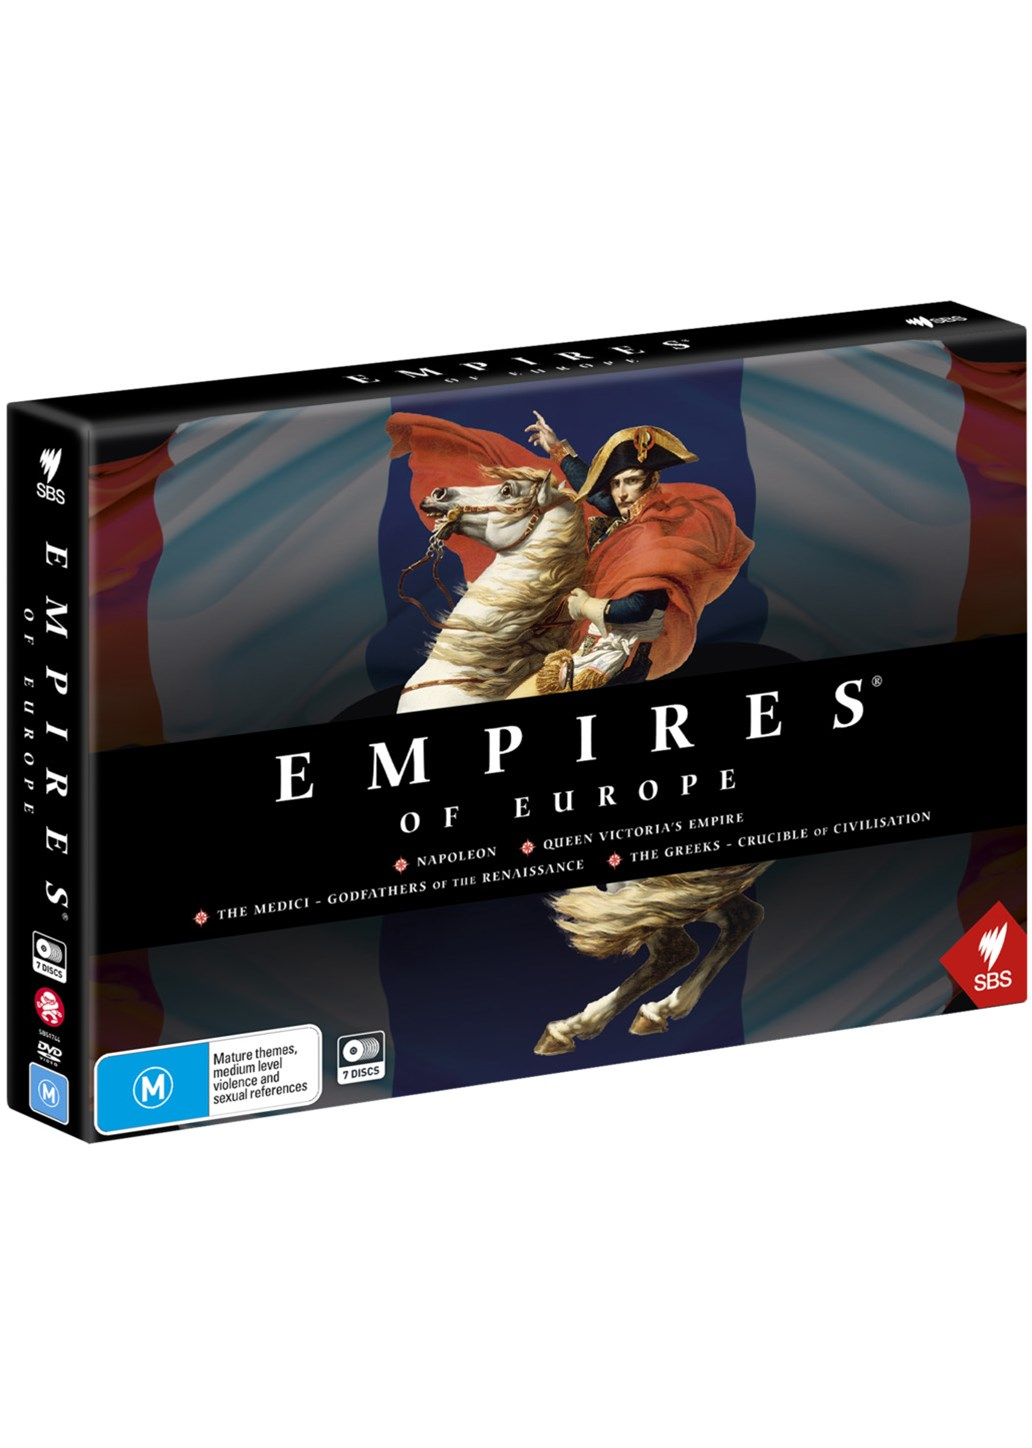 Empires of Europe Collection